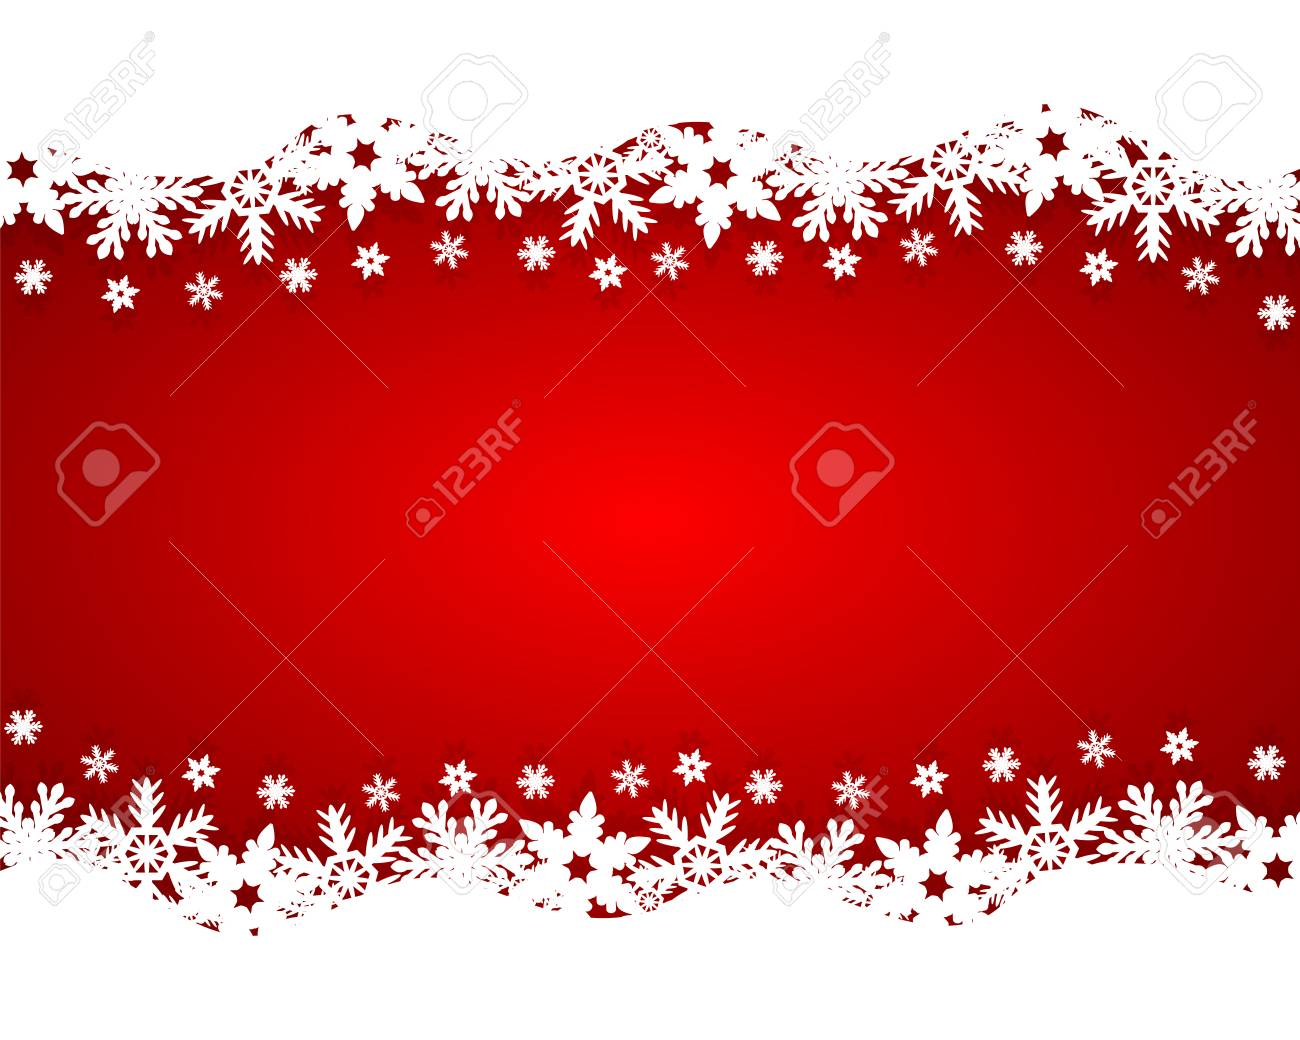 Christmas red background - 34423183